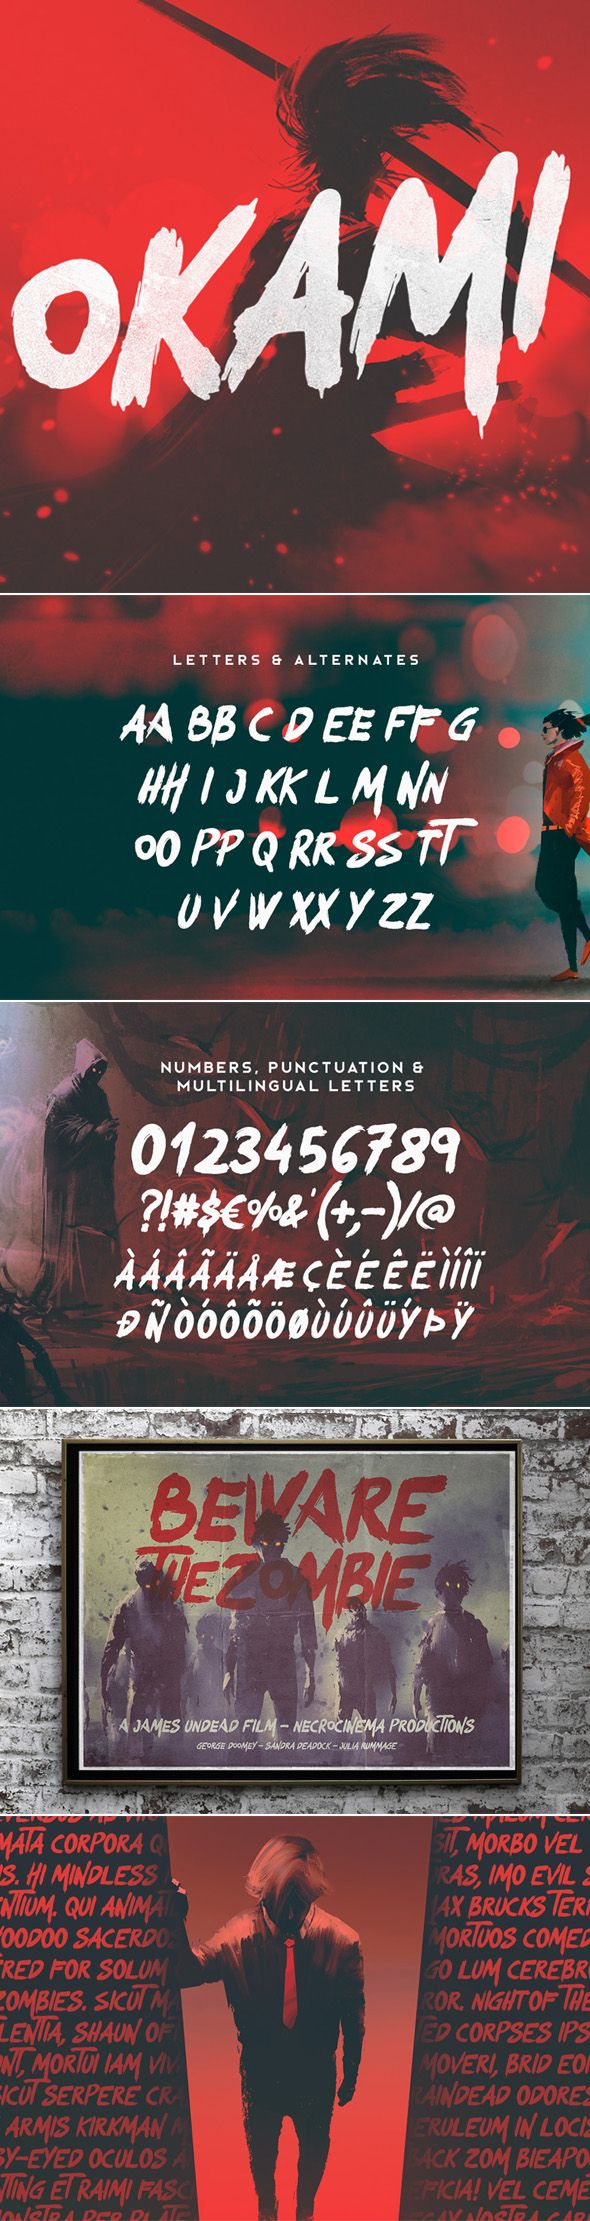 Okami - Brush Font - Sans-Serif Fonts Tap the link for an awesome selection of d...